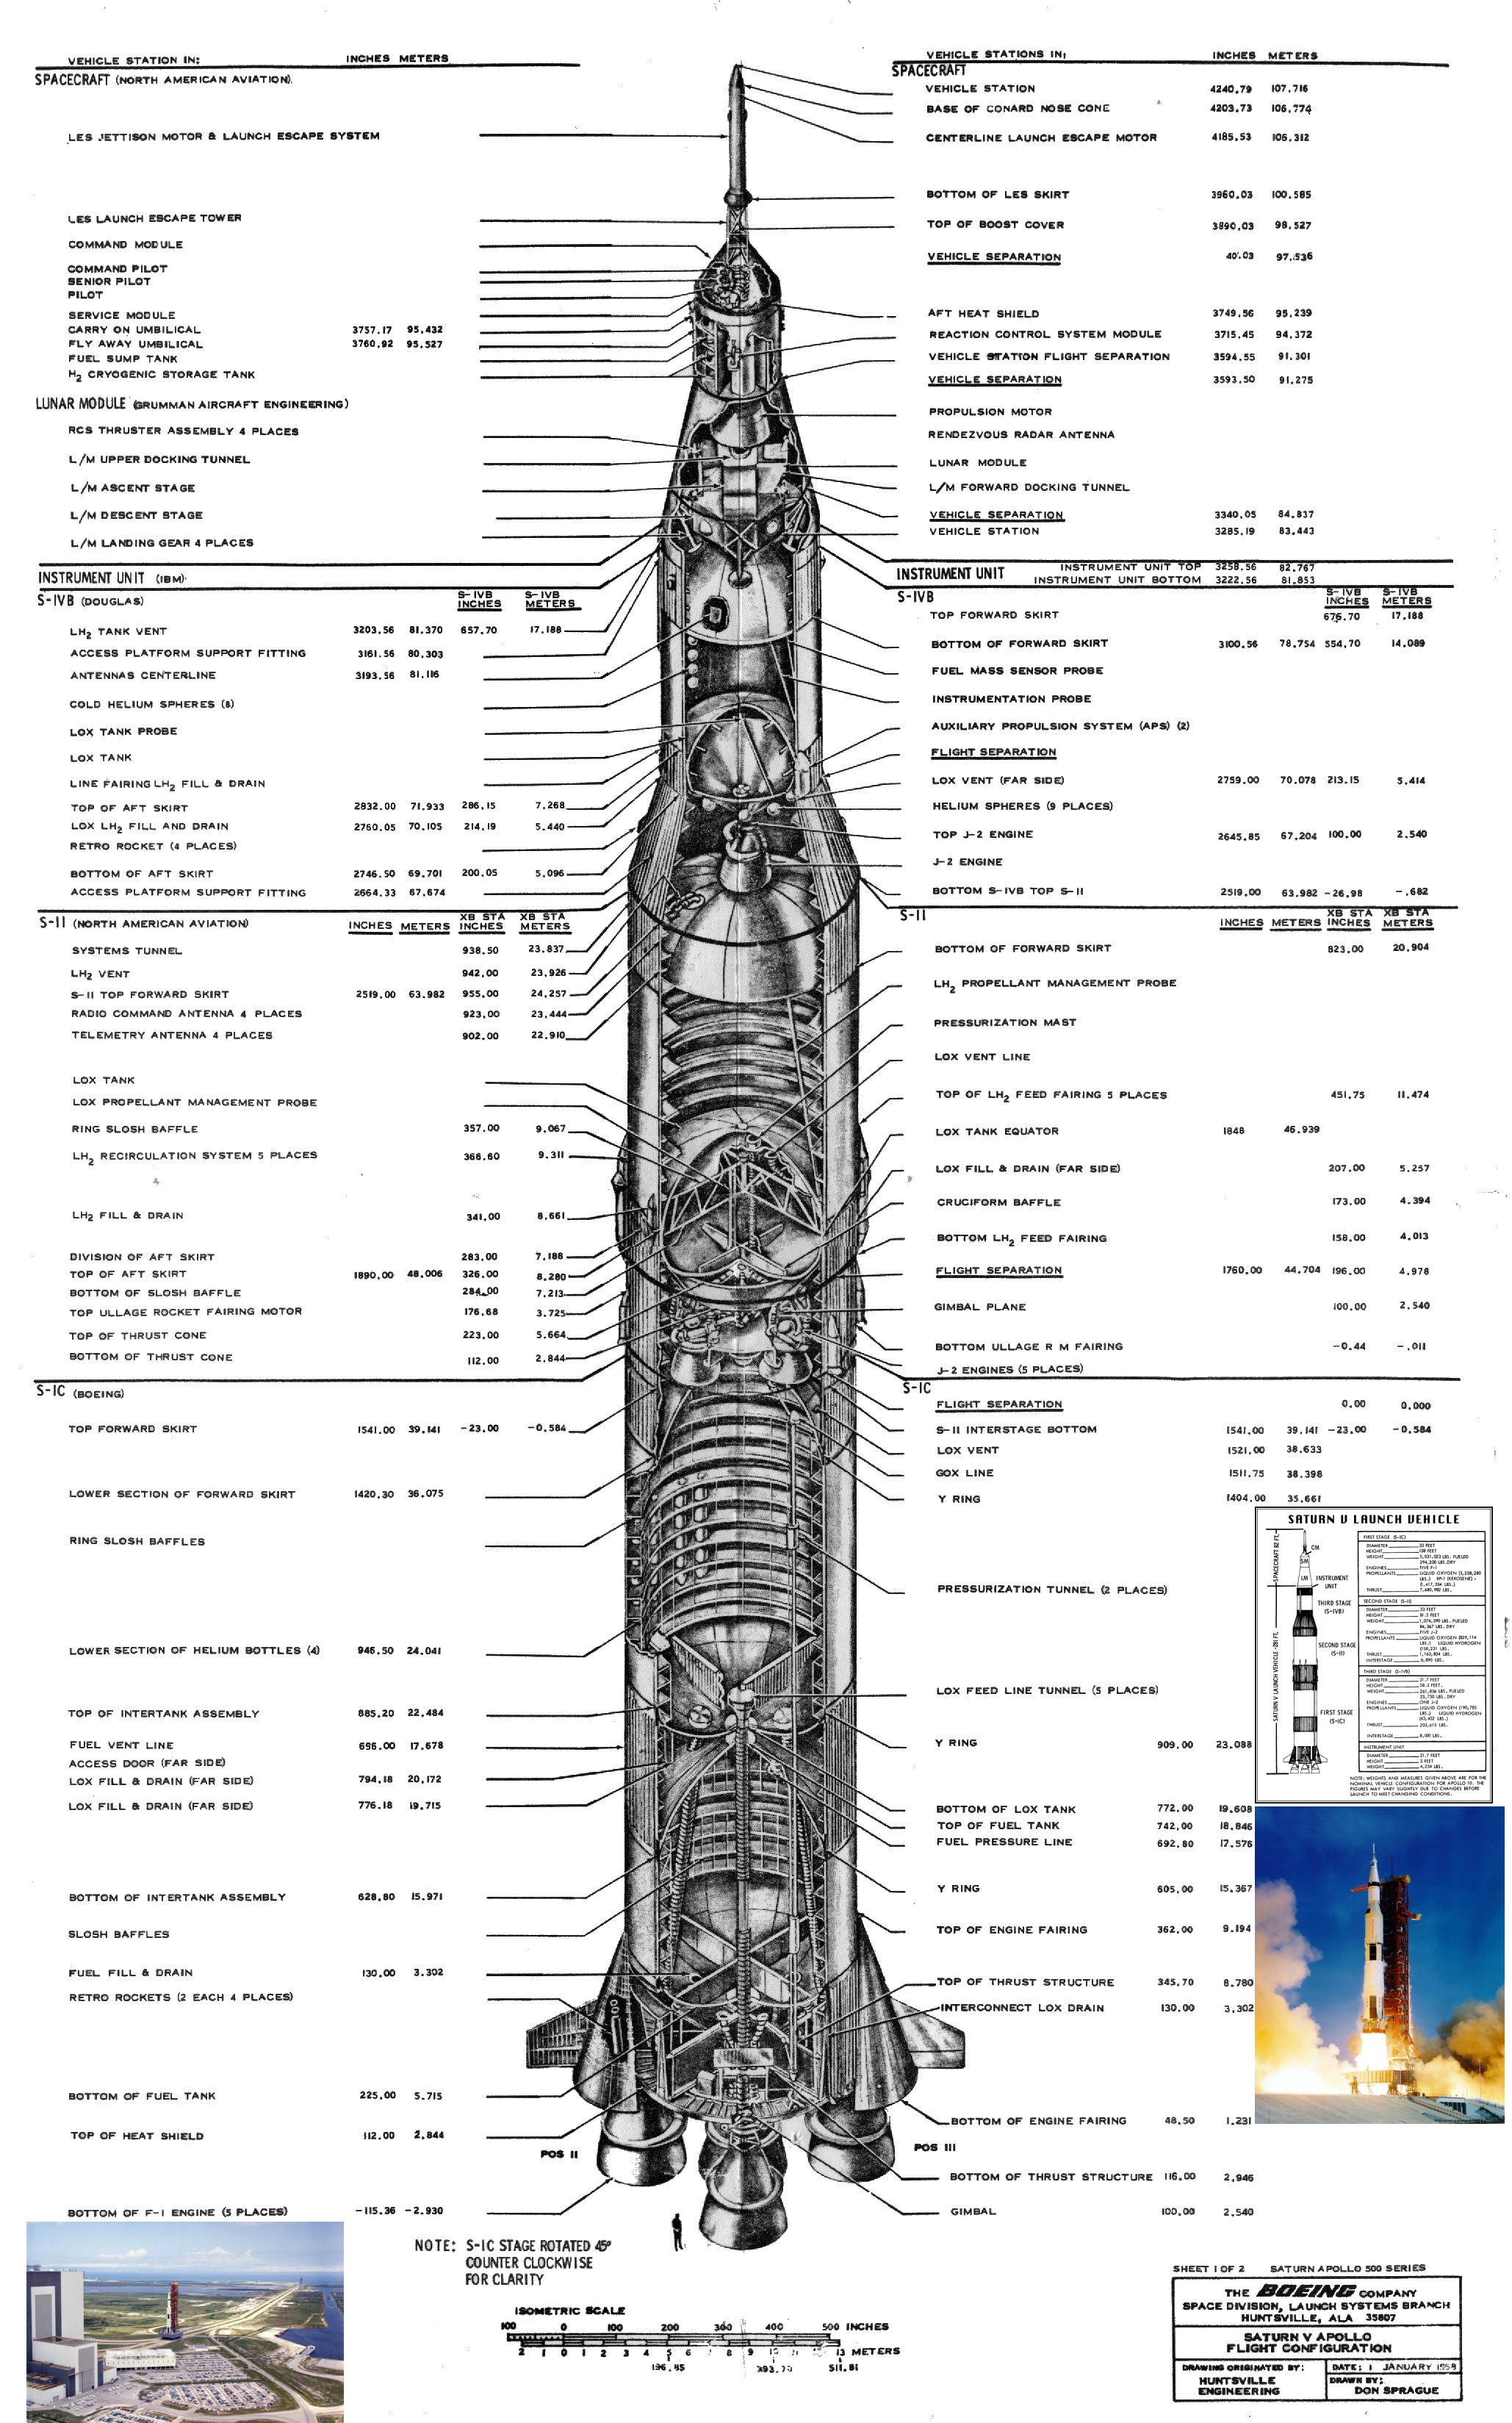 12 nasa blueprints